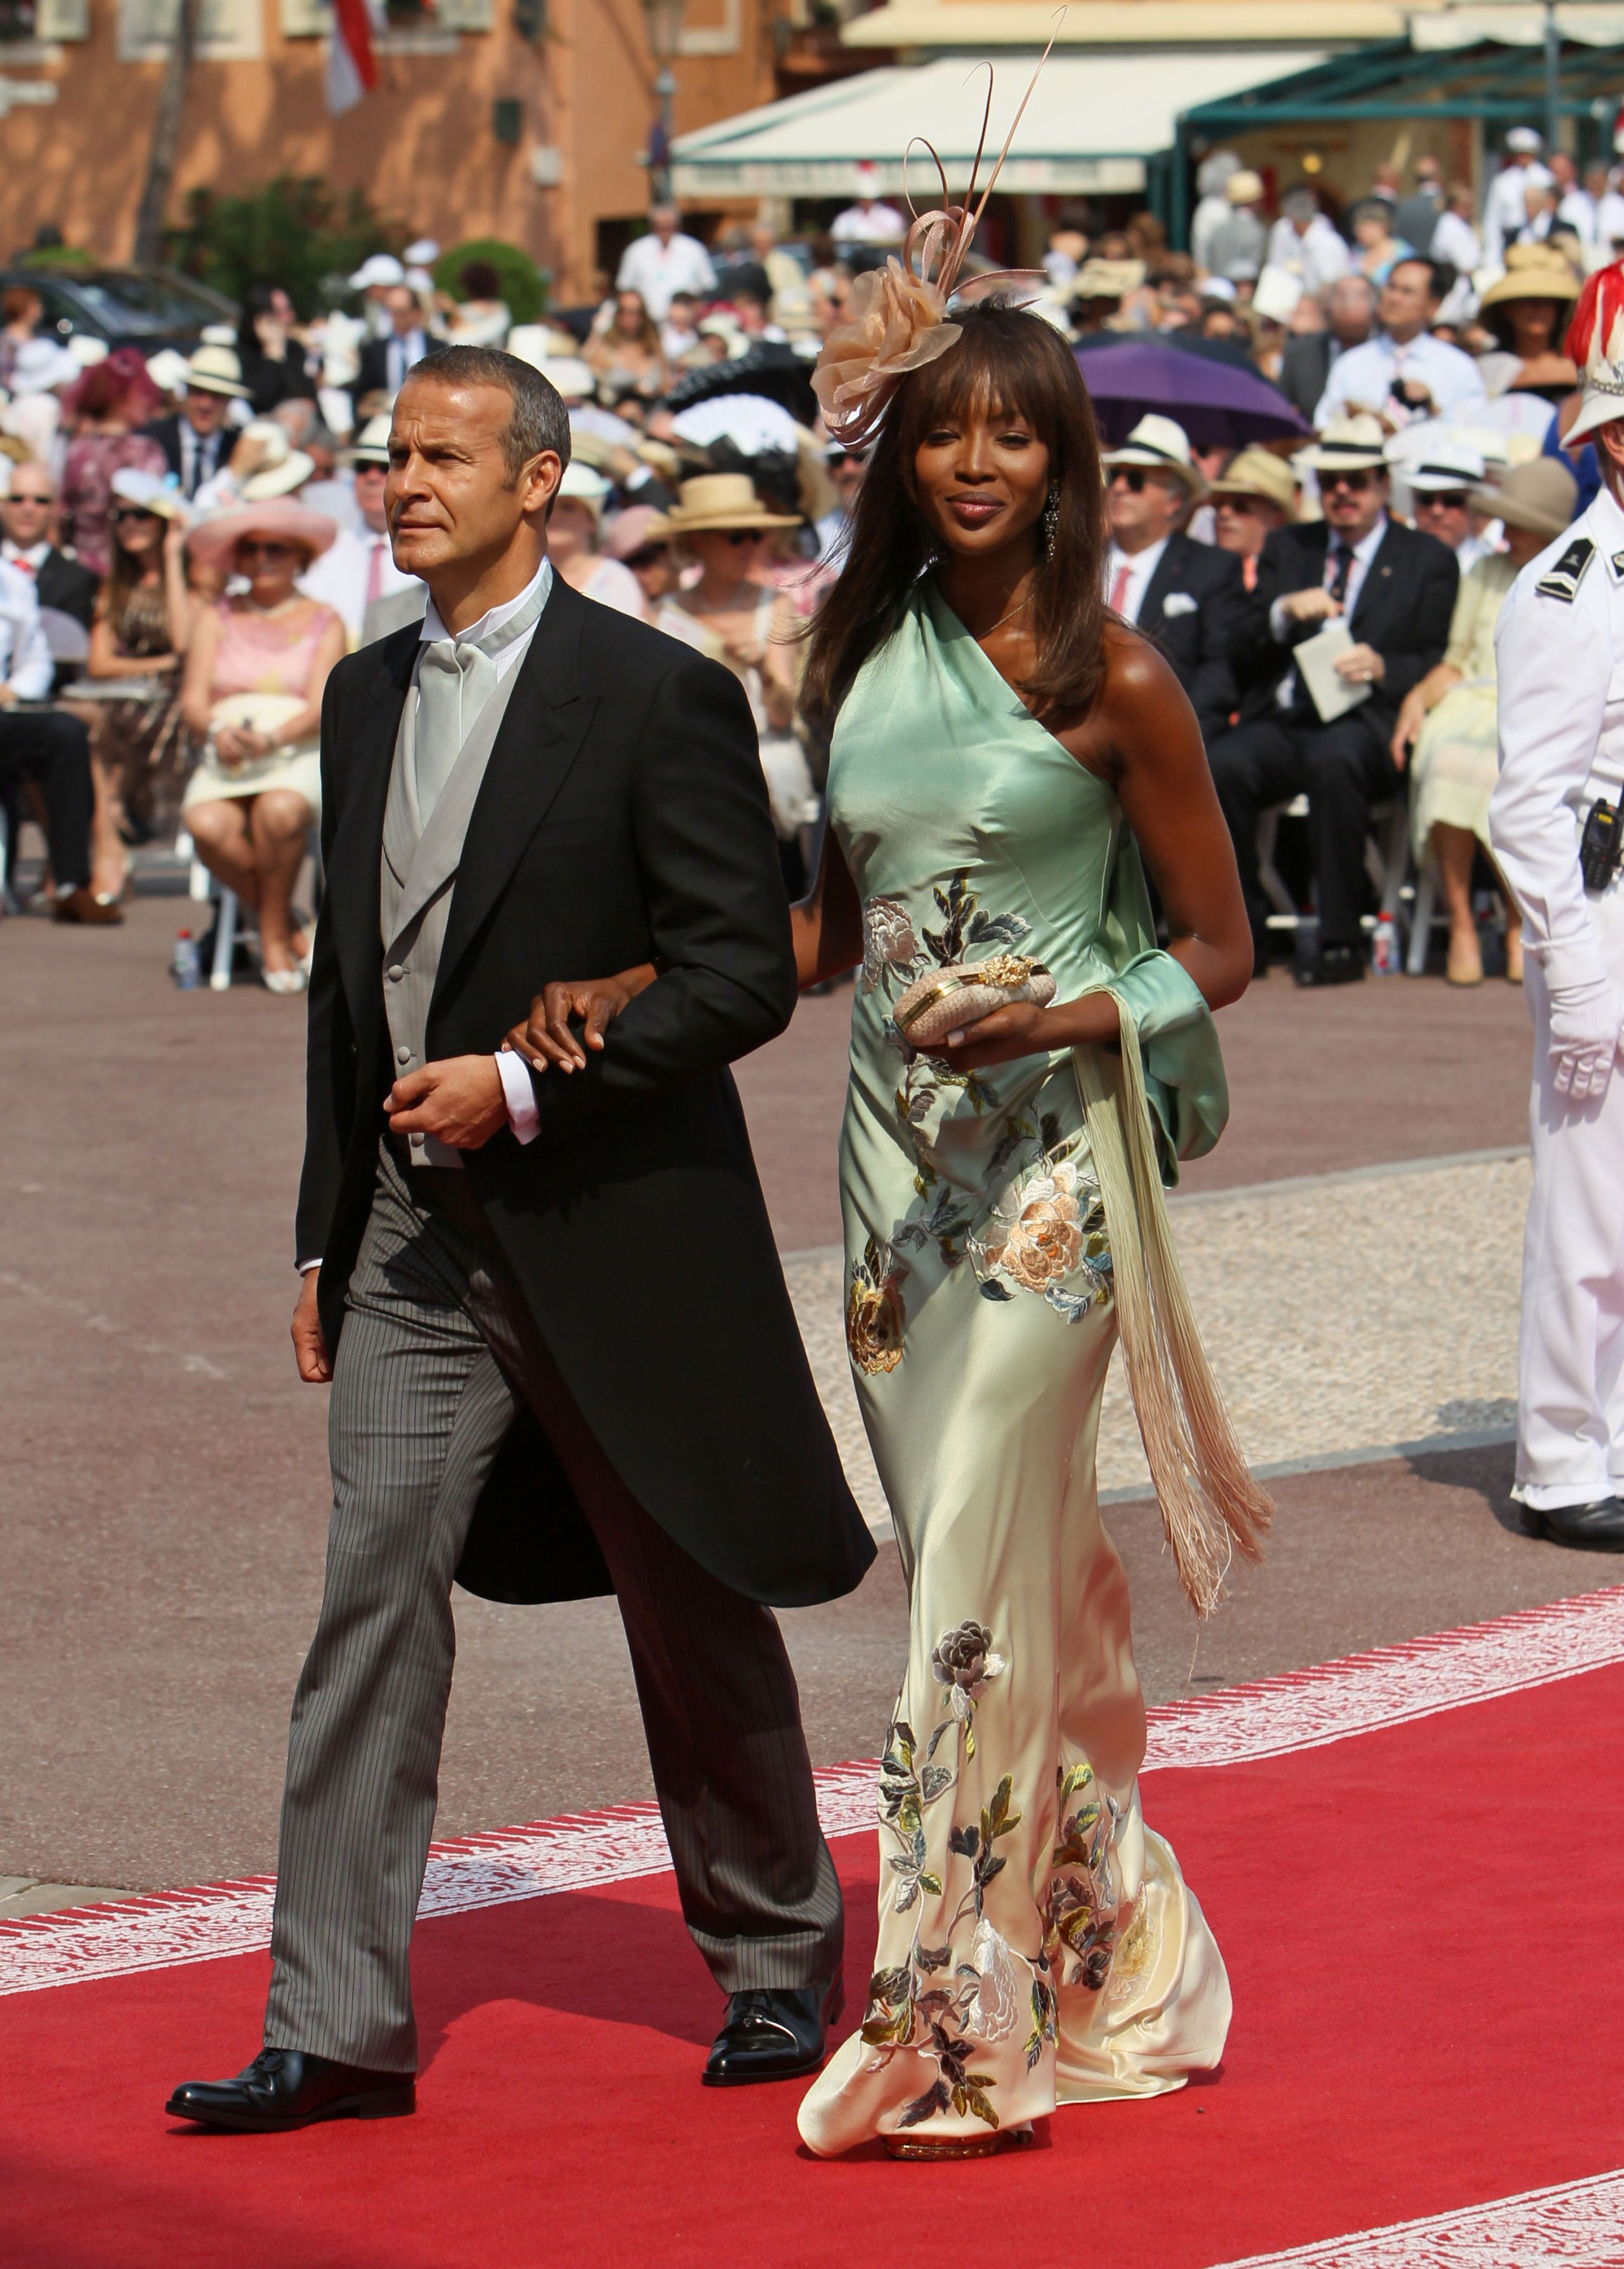 What Celebrities Wear As Wedding Guests